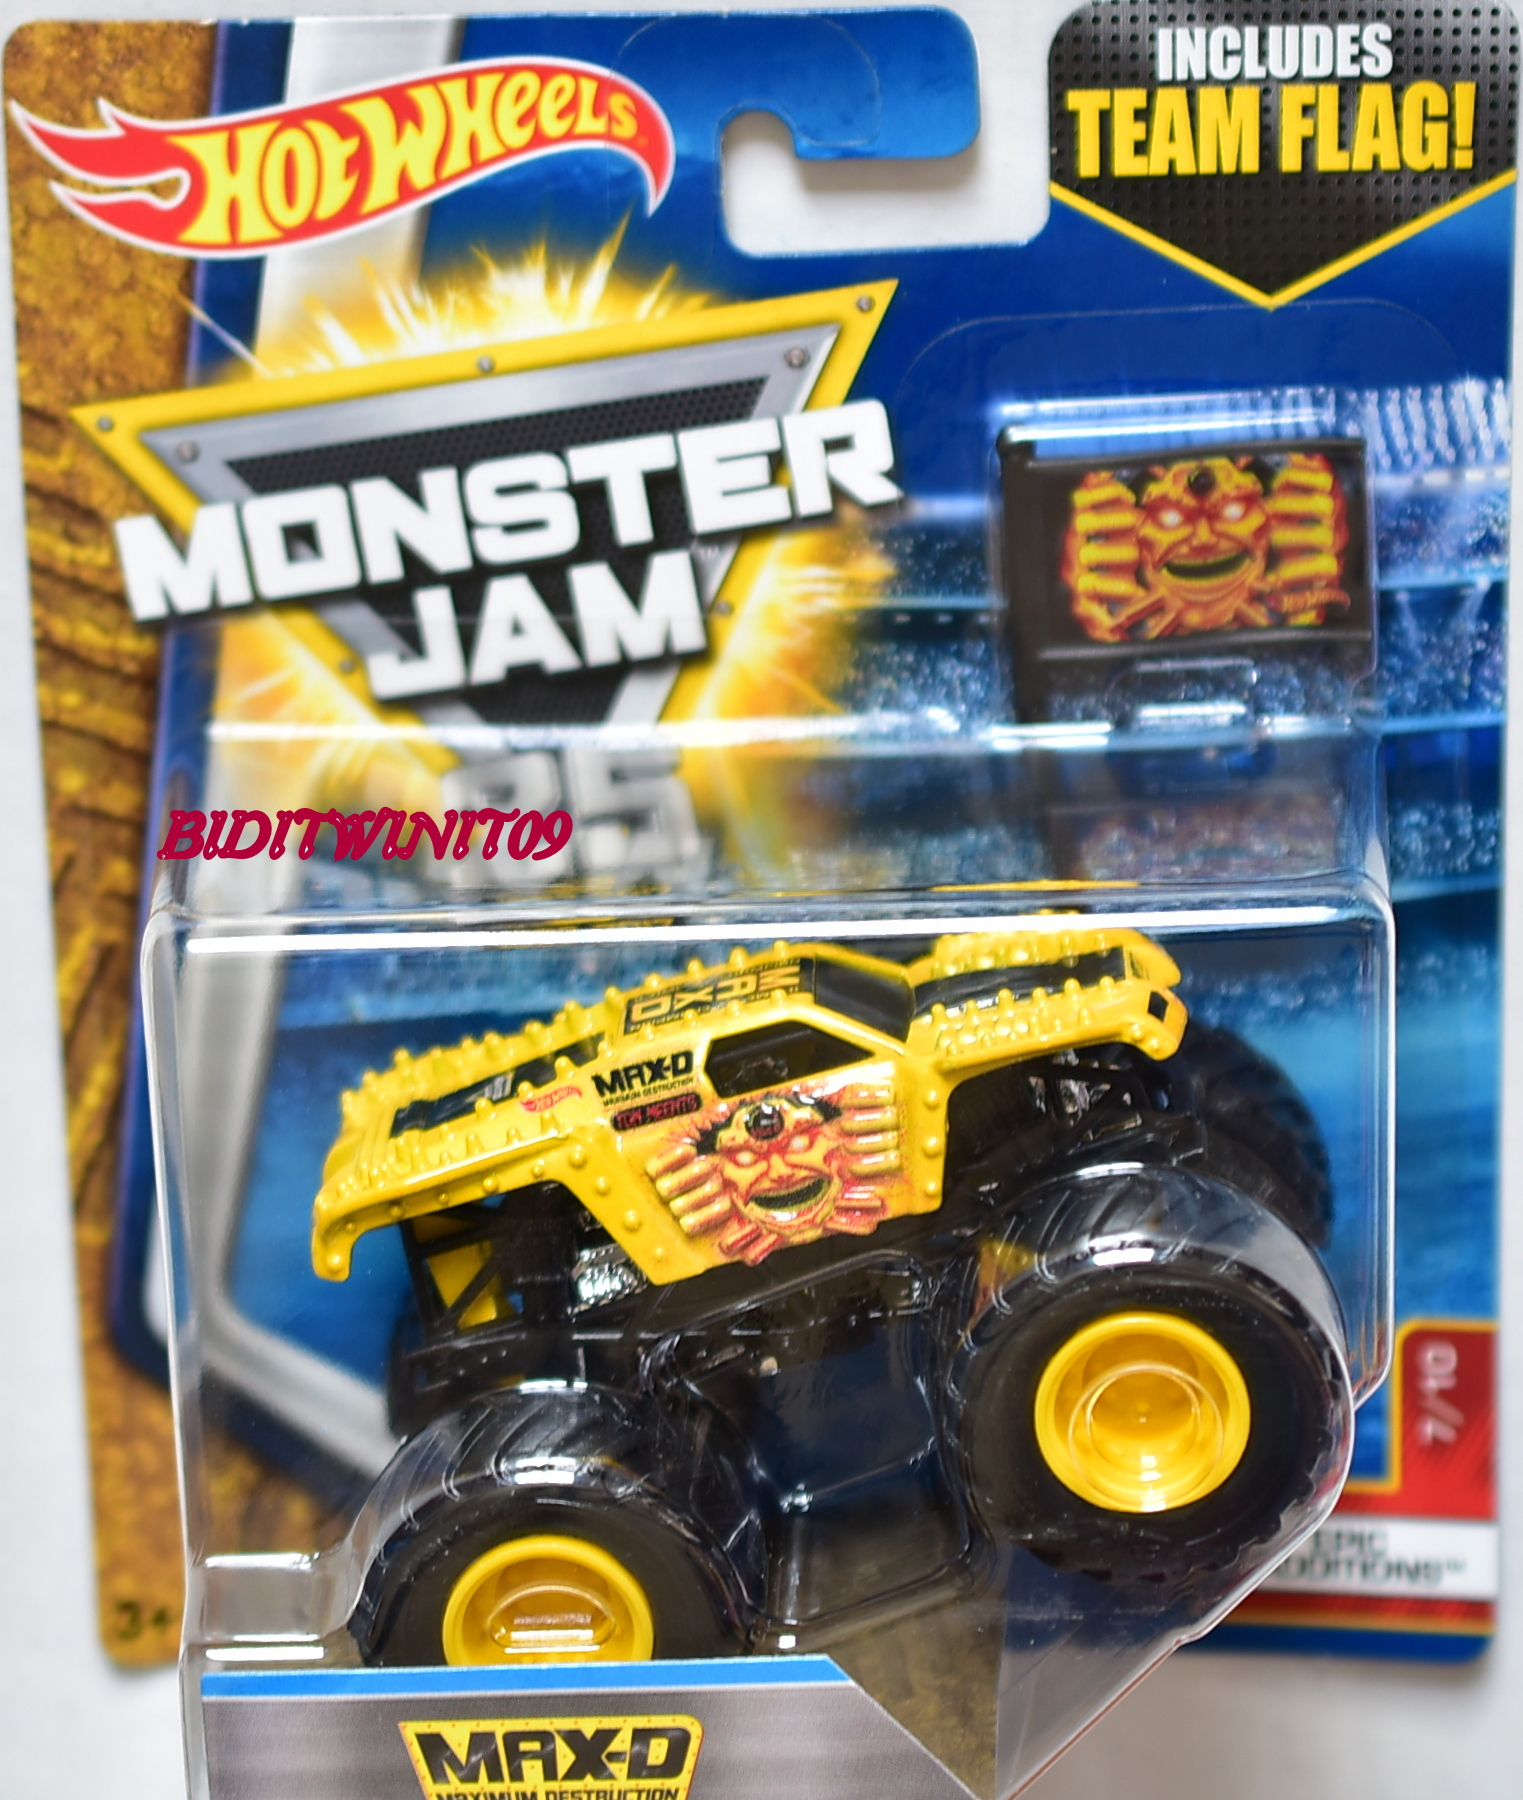 HOT WHEELS 2017 MONSTER JAM INCLUDES TEAM FLAG MAX-D EPIC ADDITIONS 7/10 YELLOW